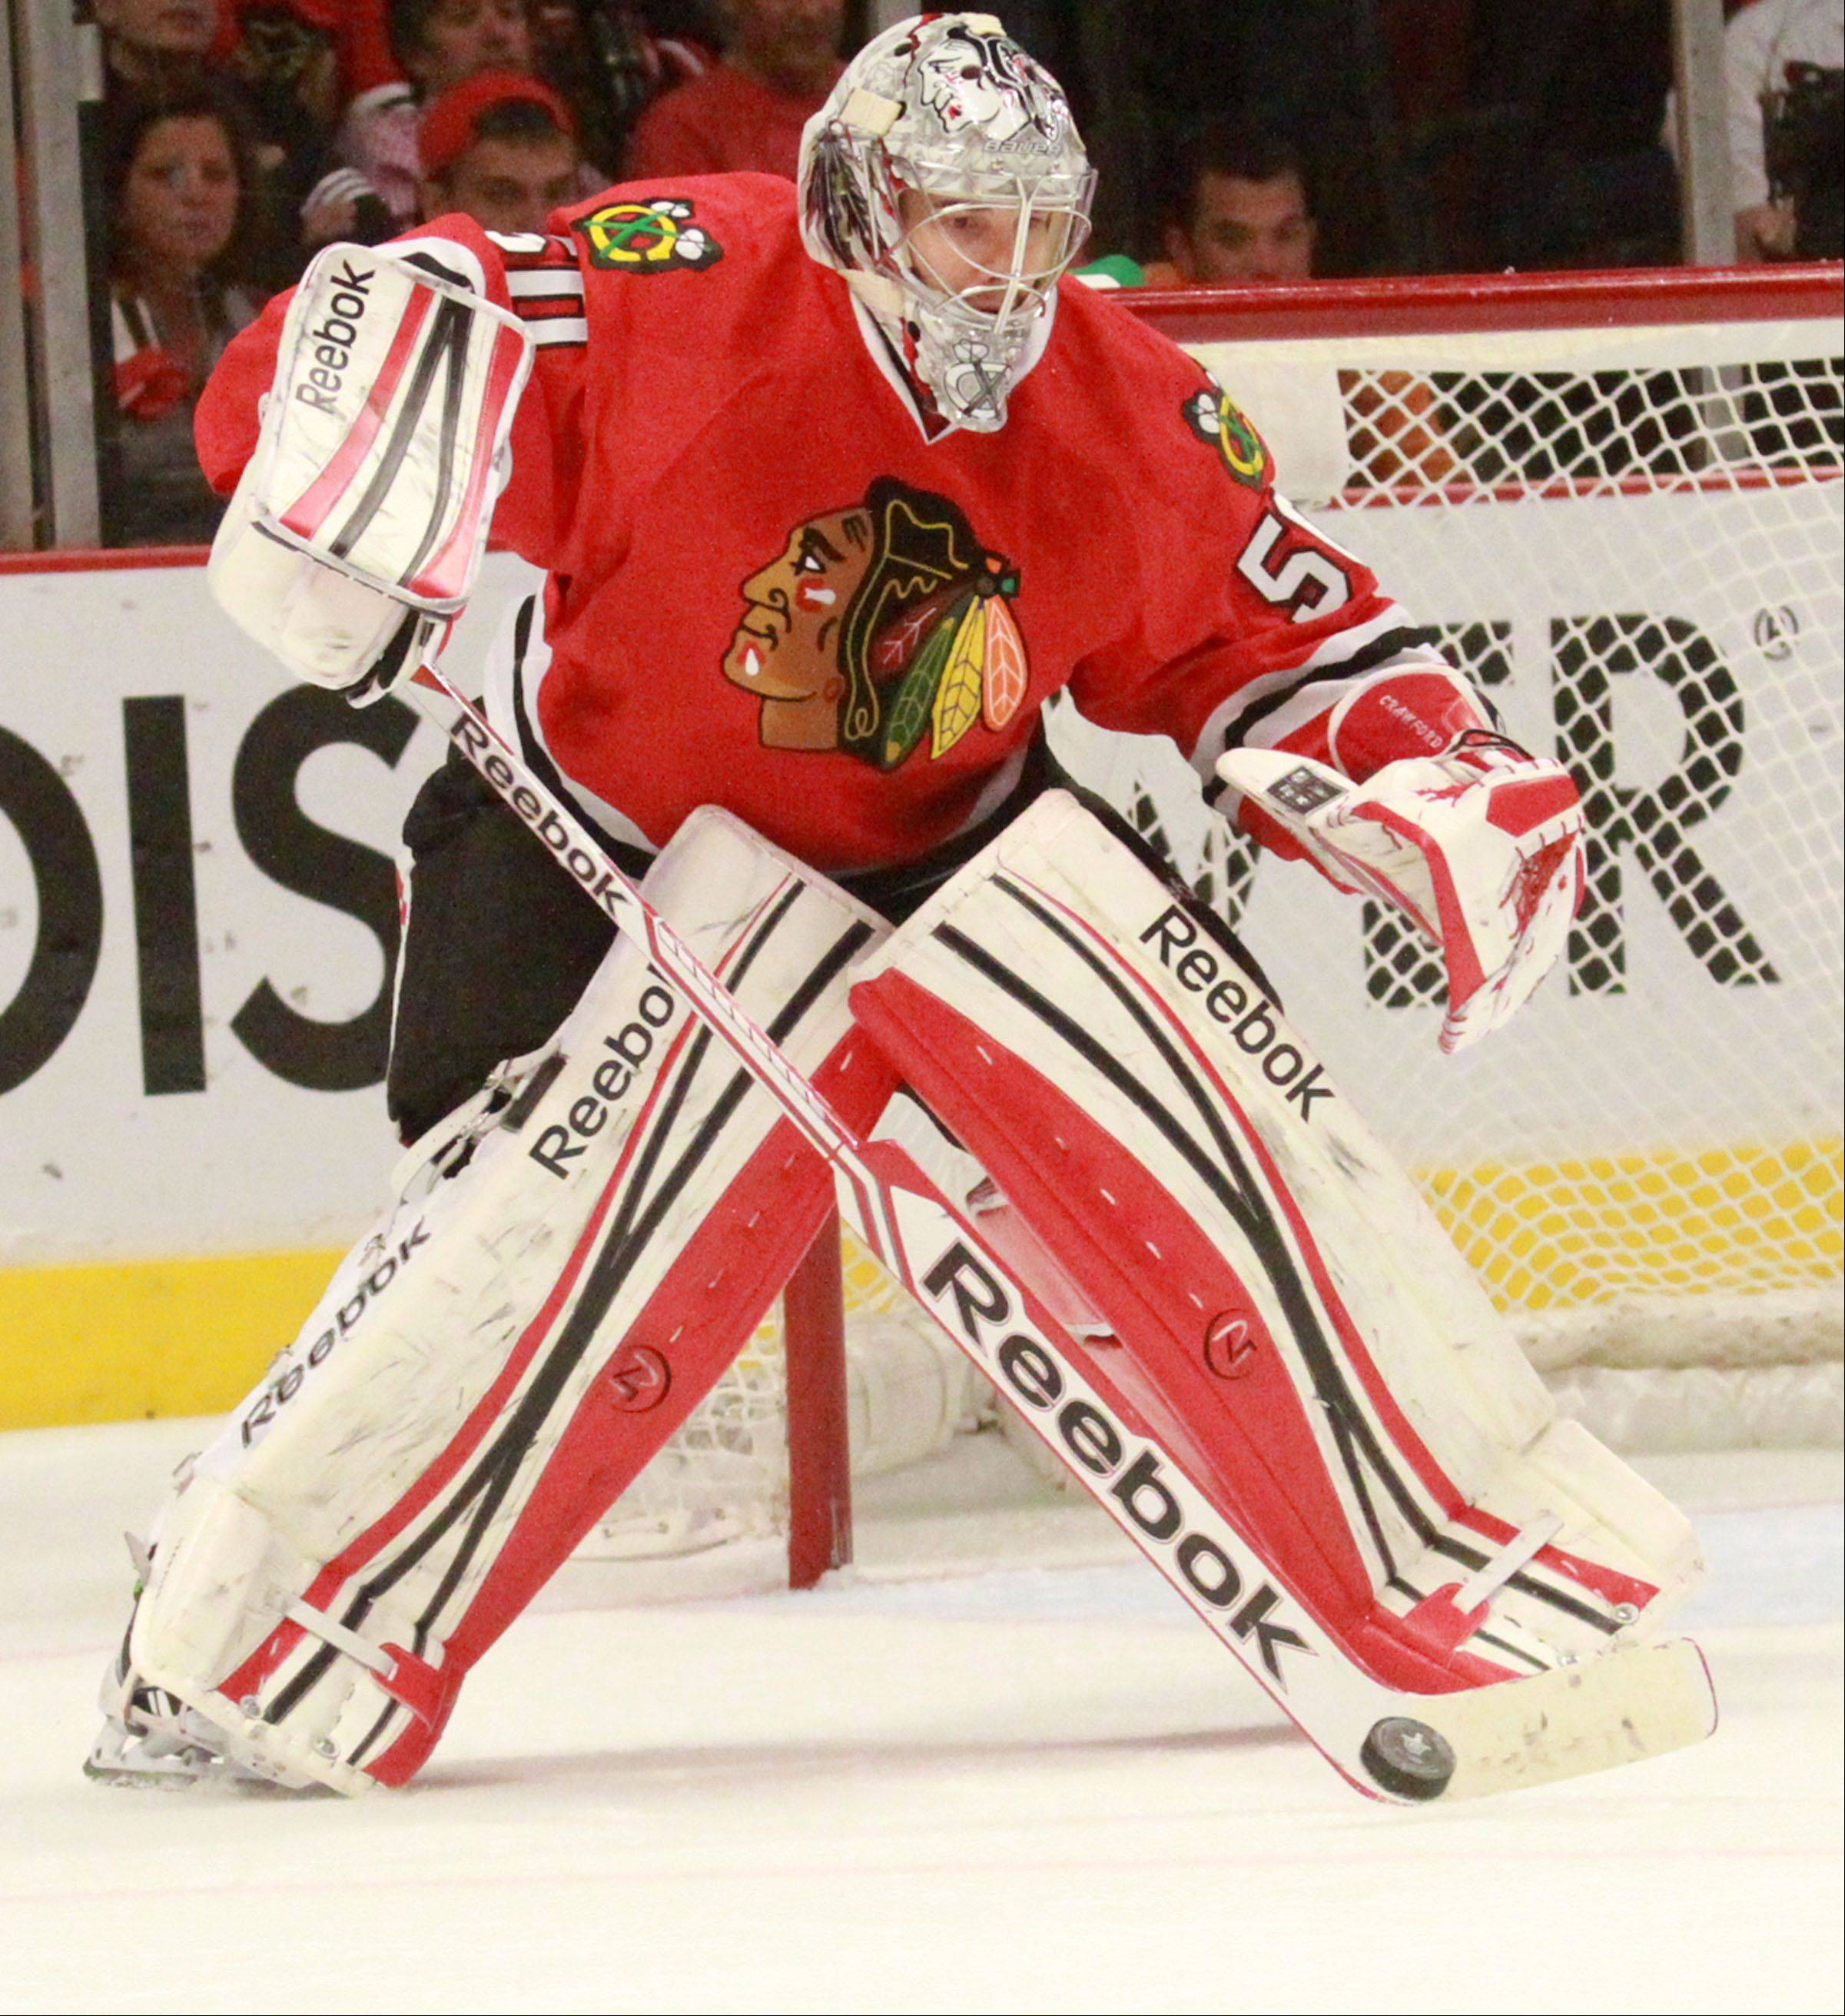 Goalie Corey Crawford blocks a shot again in the Blackhawks� 5-1 win against the Minnesota Wild. The win made the series the first playoff series Crawford has won, and the first for the Hawks since their 2010 Stanley Cup win.